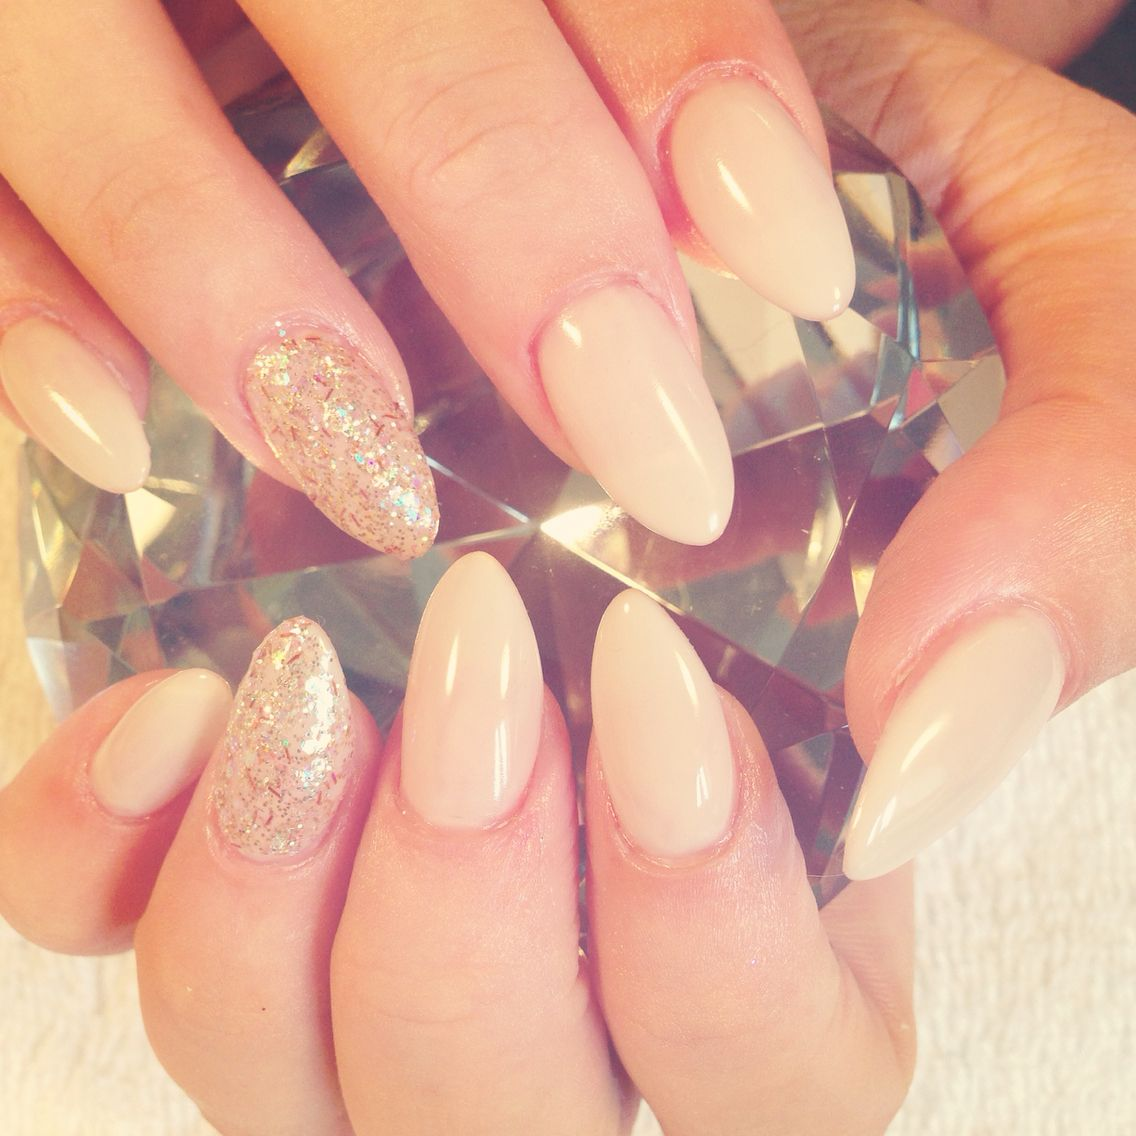 Nude and gold almond shape acrylic nails new nail ideas nude and gold almond shape acrylic nails solutioingenieria Images